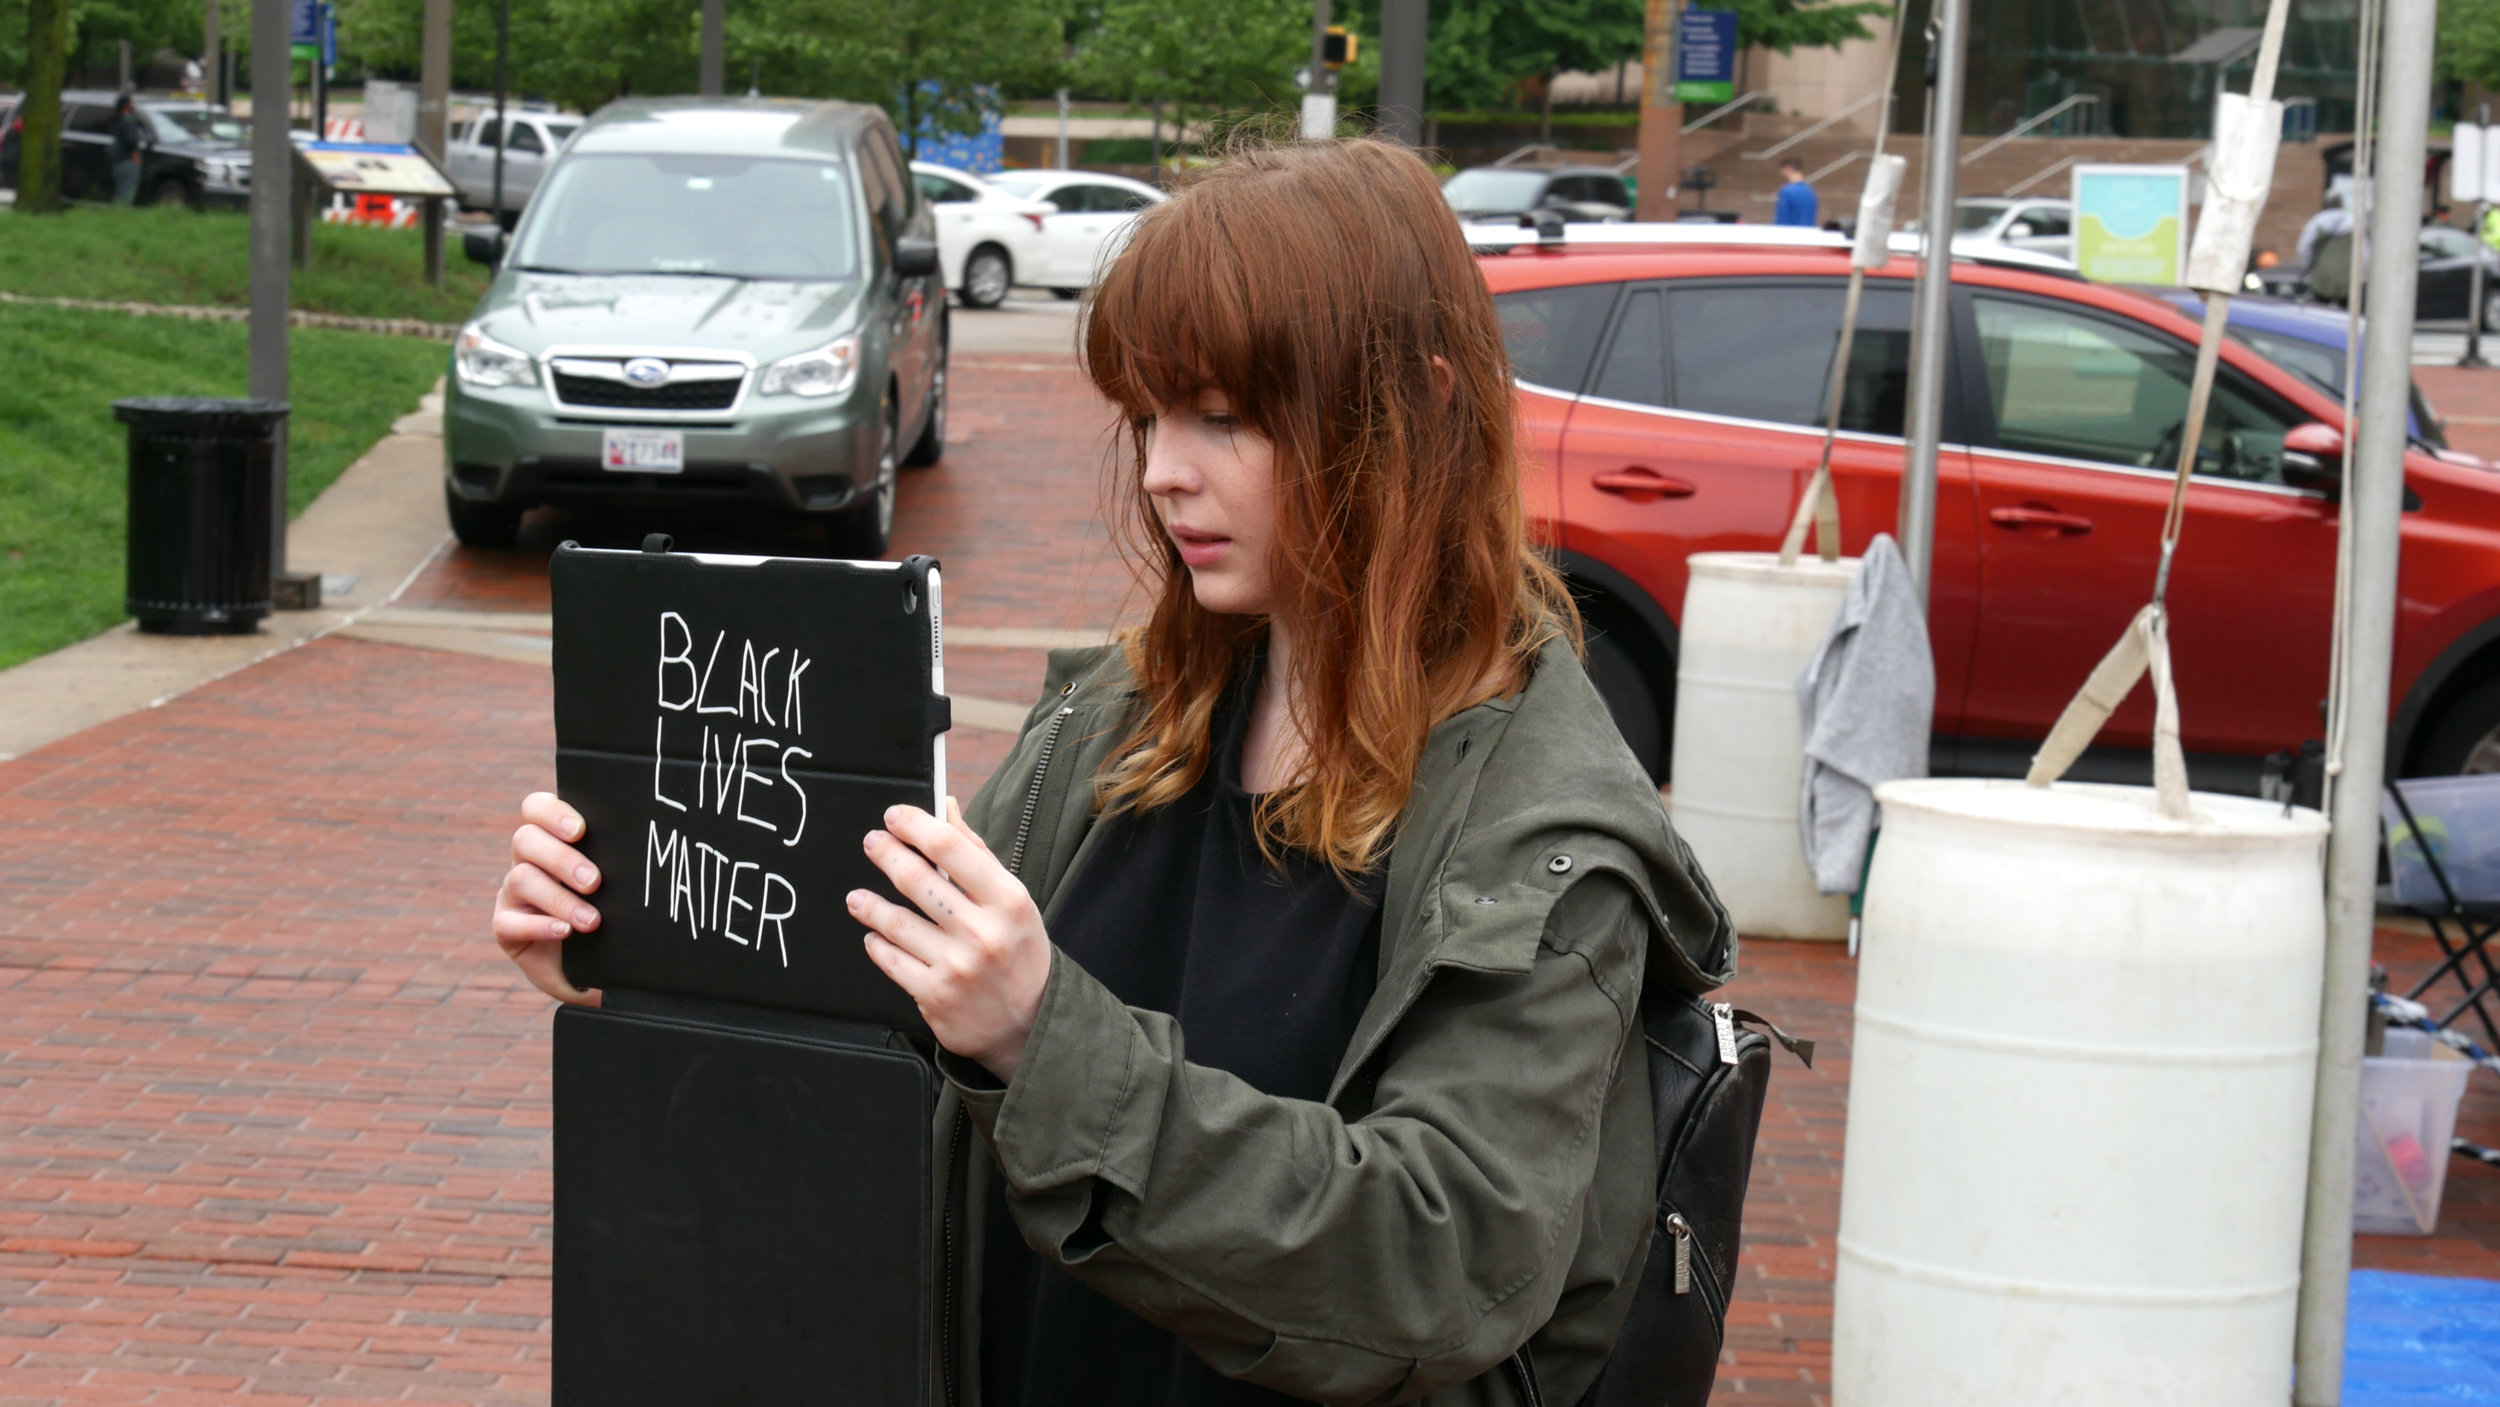 Maura Callahan holding an iPad like a protest sign and bringing back McKeldin Fountain. McKeldin Square, May 19 2018. Photograph by Timothy Nohe. © nonument01.org 2018